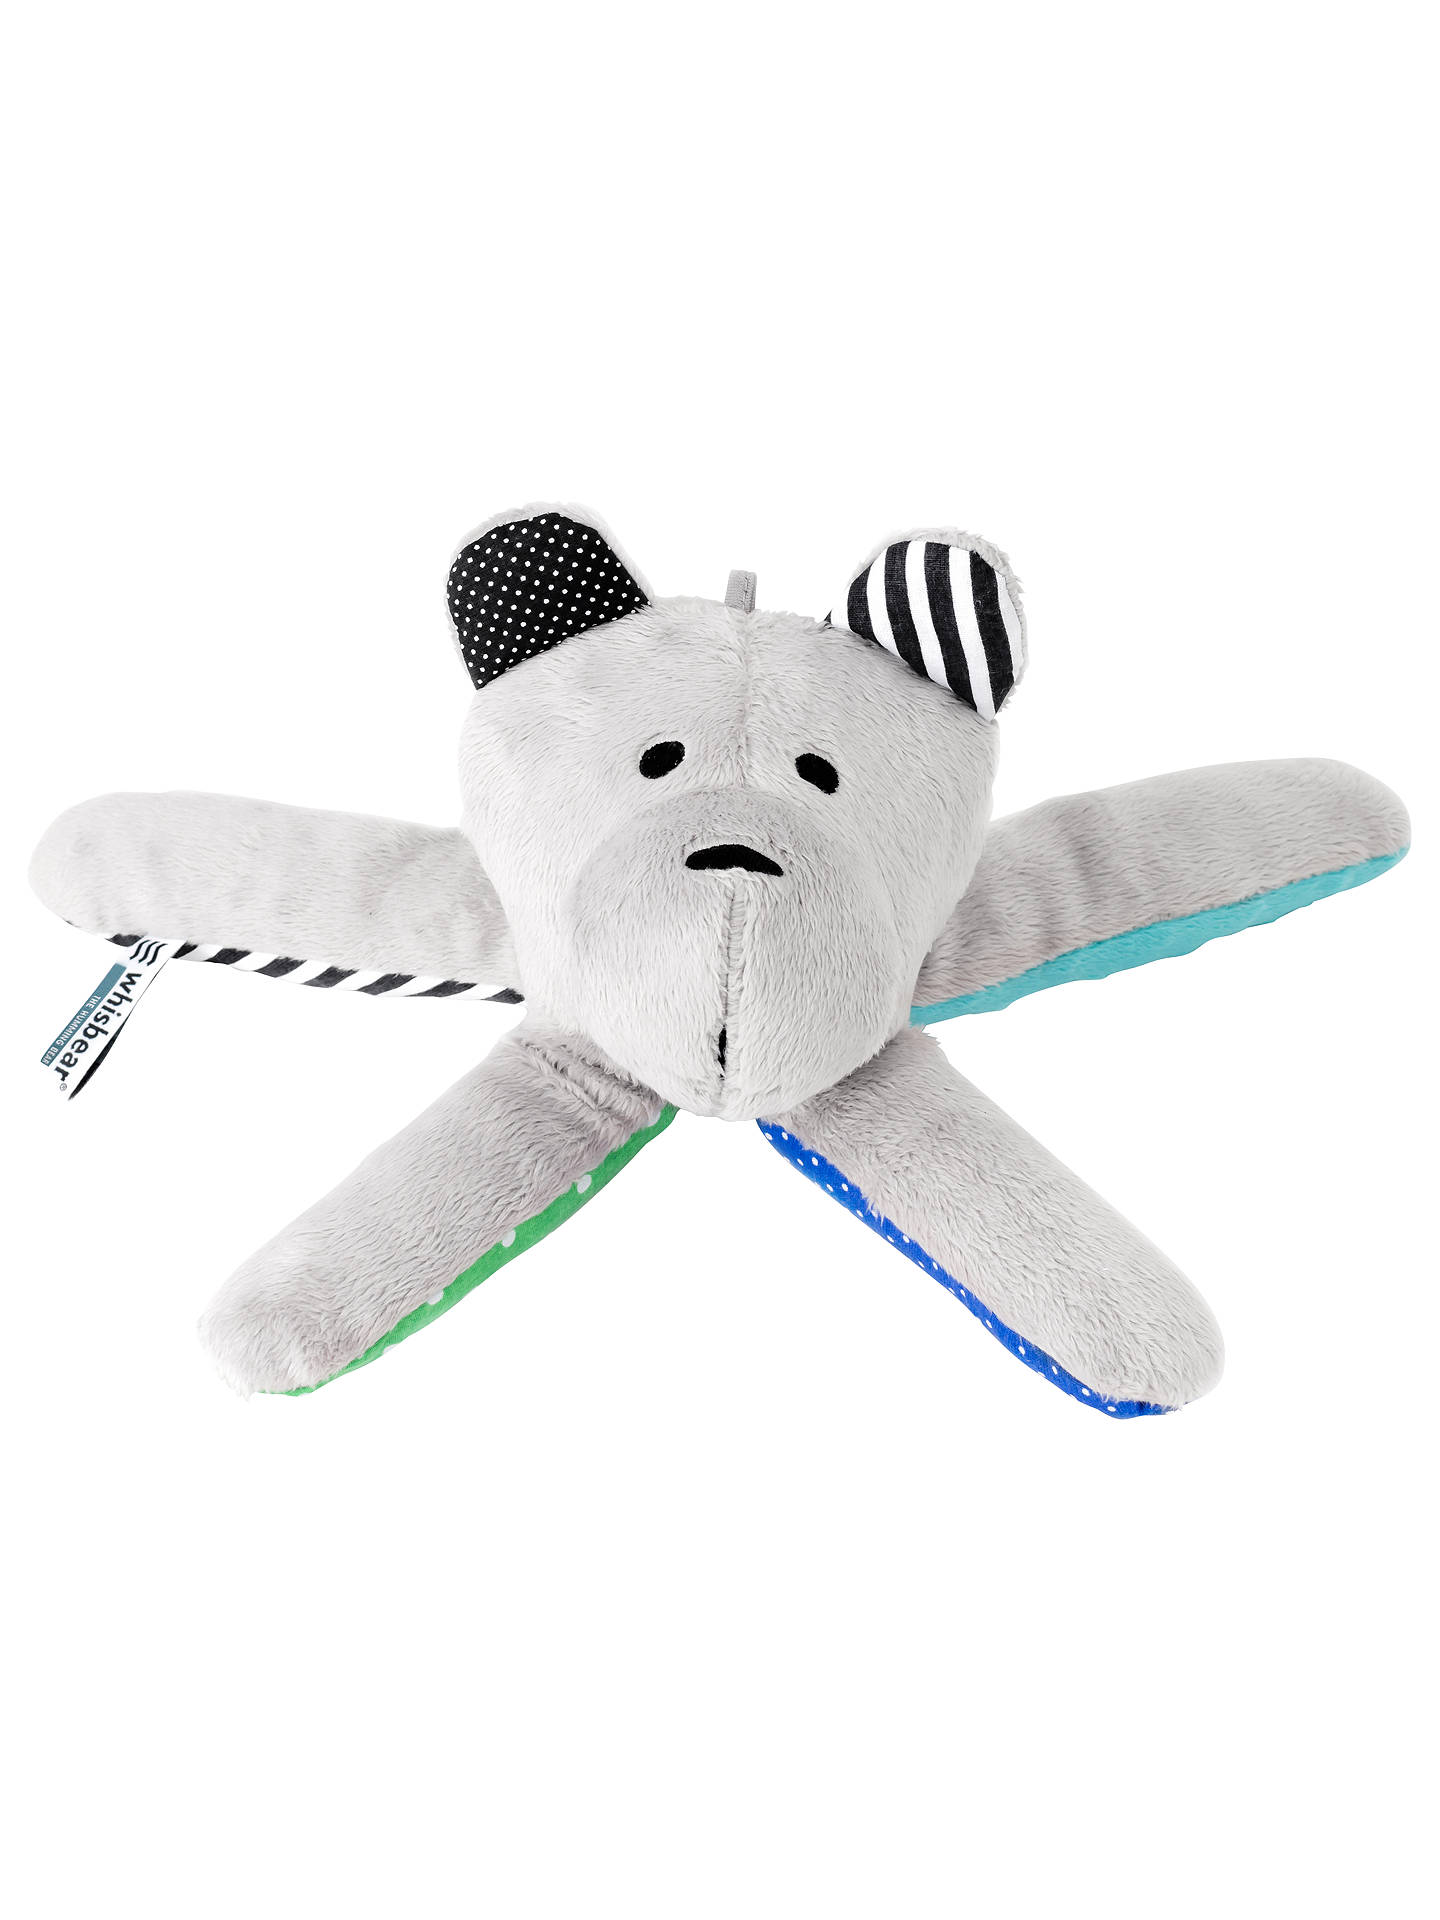 BuyWhisbear The Humming Bear with CRYSensor Online at johnlewis.com